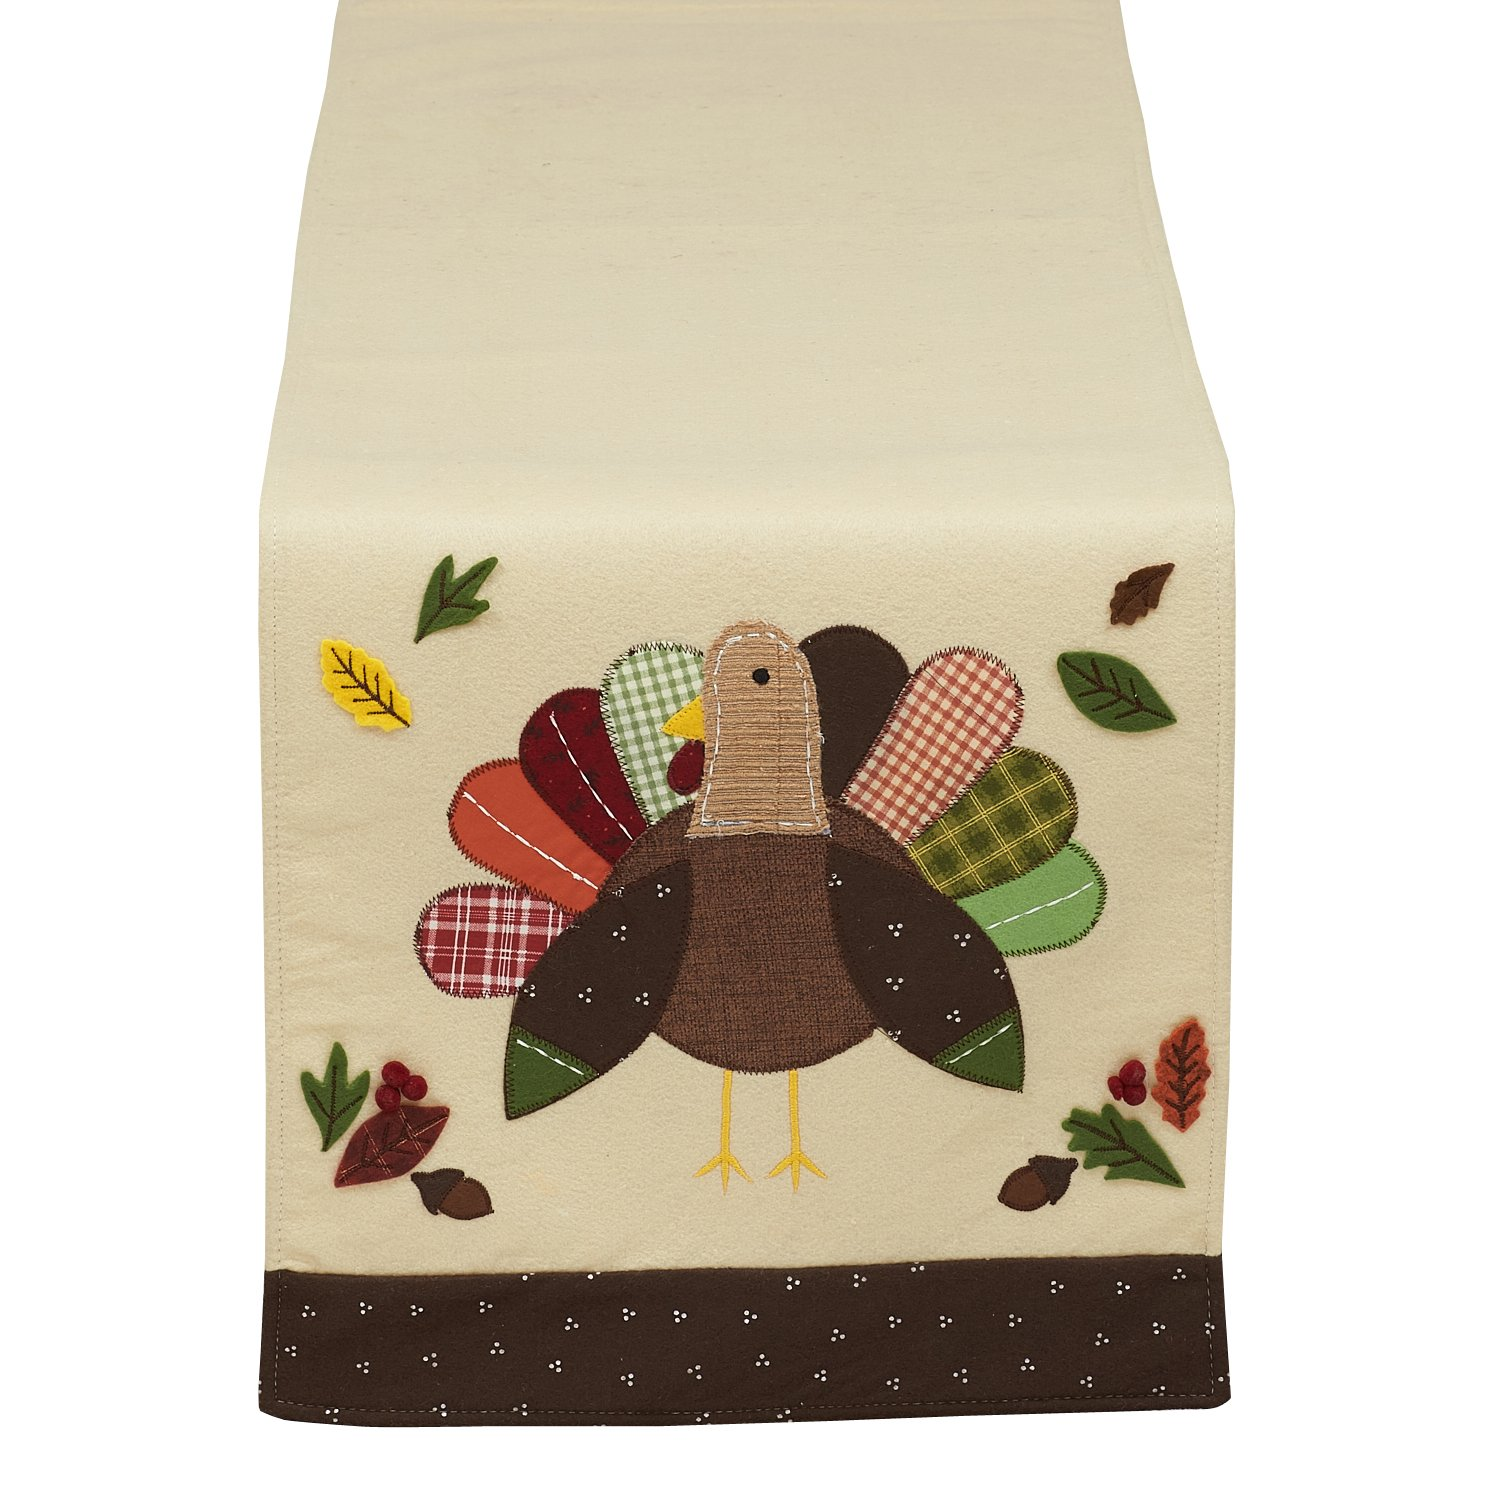 Design Imports Turkey Table Runner